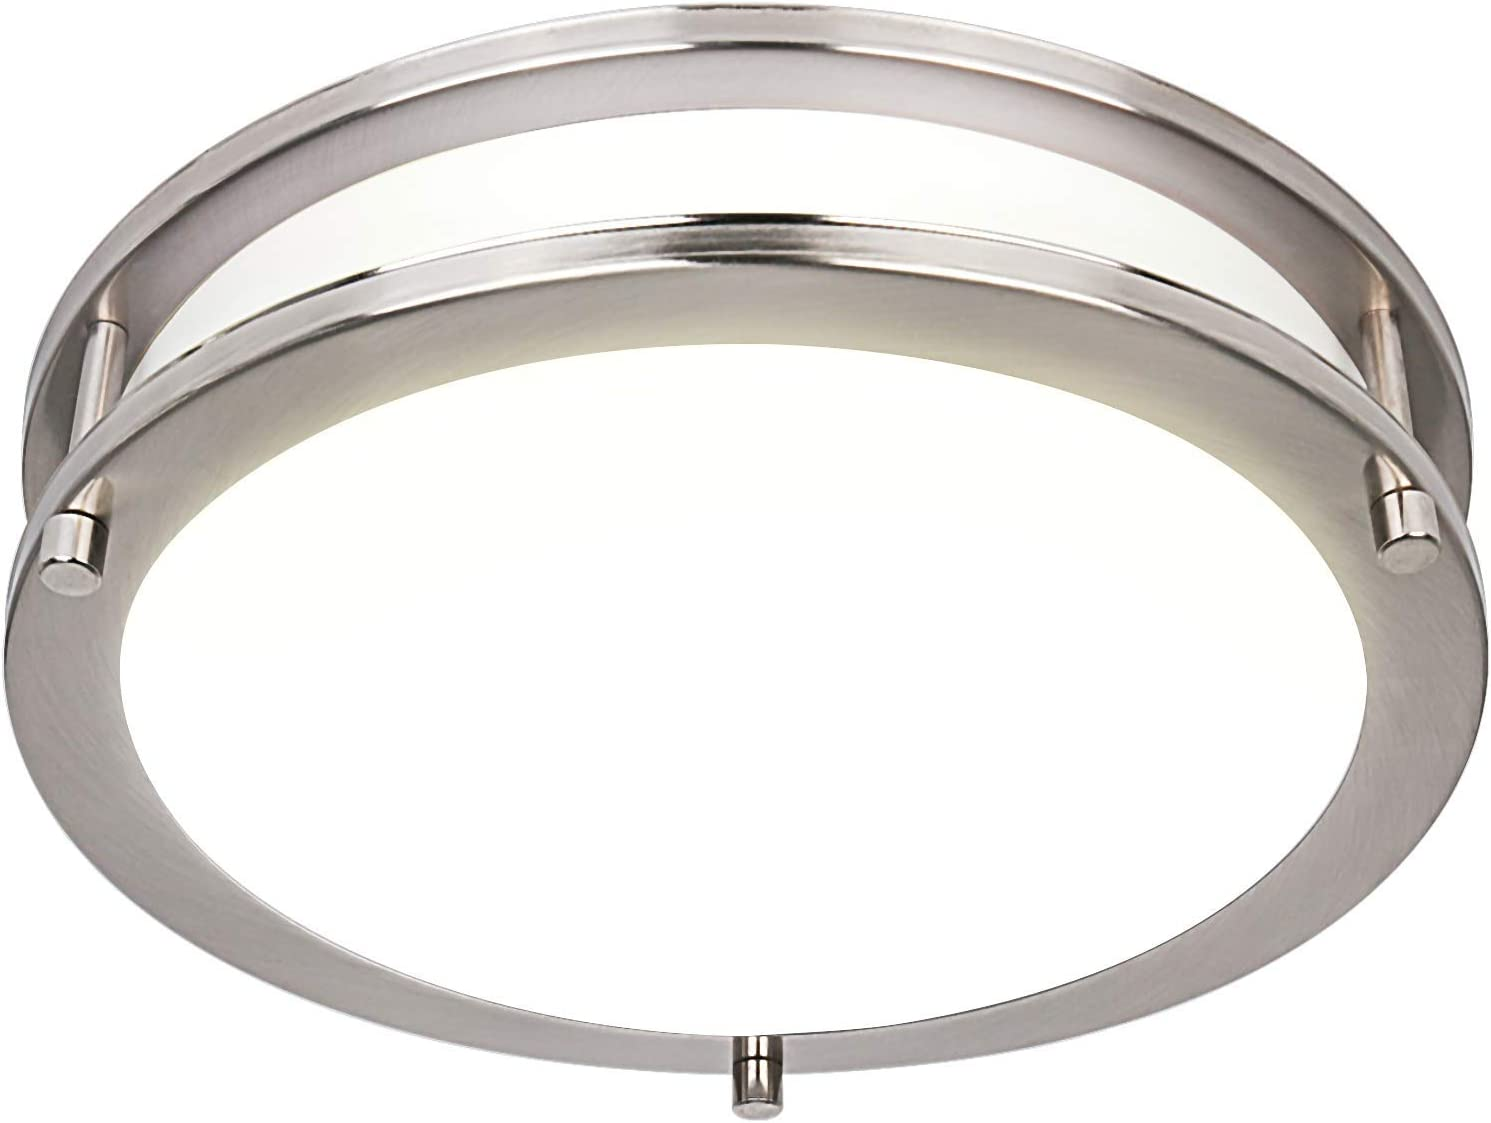 Hykolity 10 Inch Dimmable LED Ceiling Light, 17W [120W Equivalent] 1100lm 4000K Brushed Nickel Finish Saturn Flush mount Ceiling Lamps, ETL for Hallway, Bathroom, Kitchen, Bedroom, Restroom